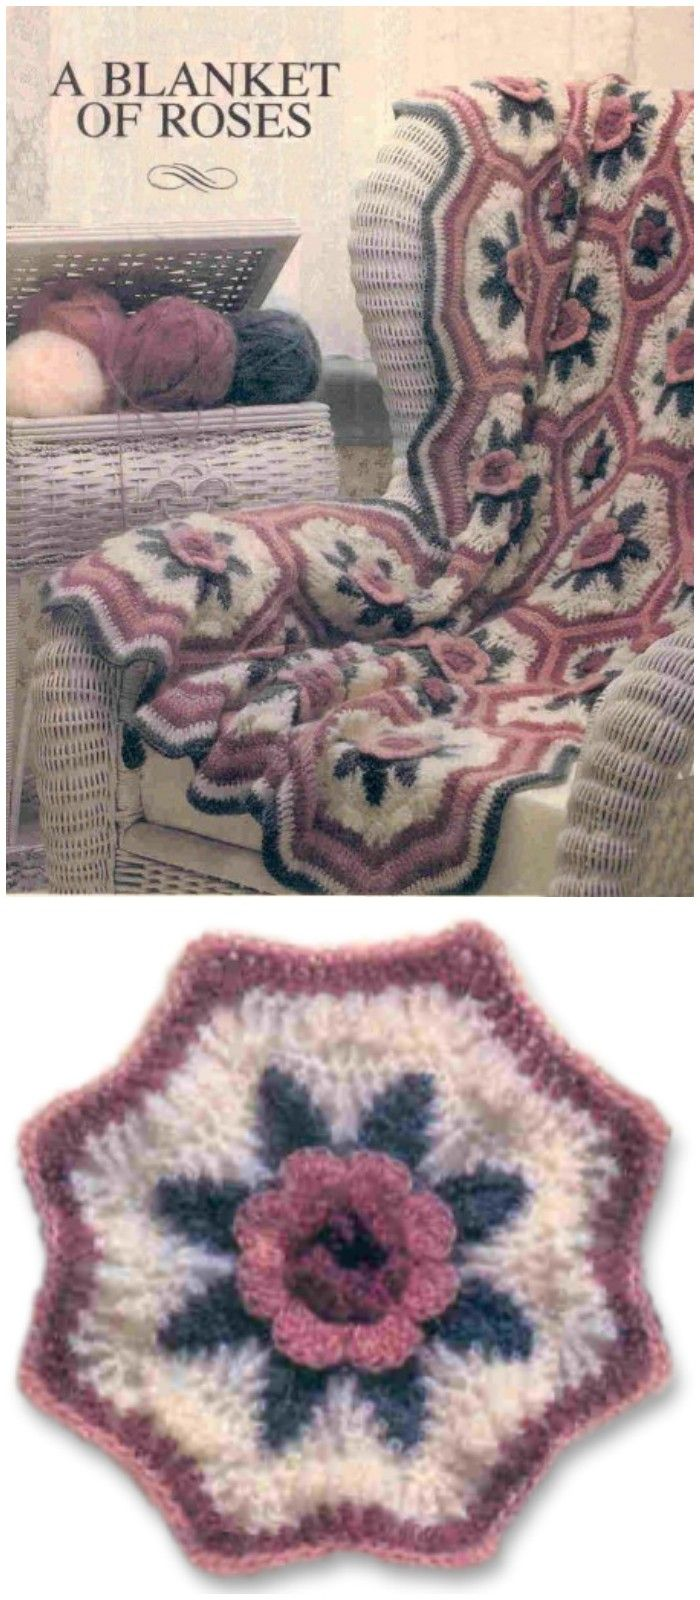 I have rounded up some of the best and interesting free crochet Blanket patterns for your home!Blanket of Roses Afghan Free Crochet Pattern